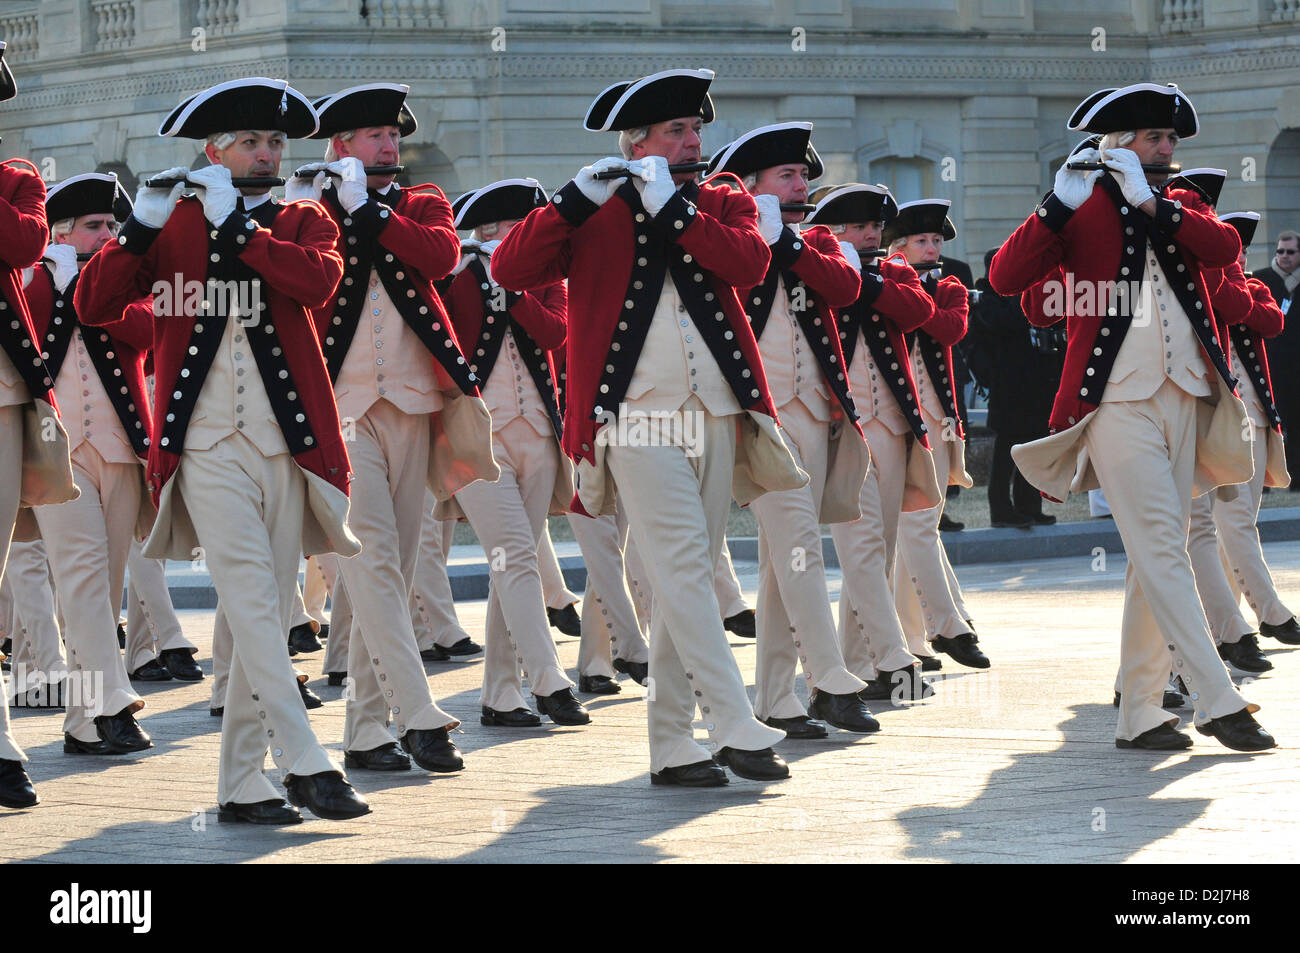 The US Army's Old Guard Fife and Drum Corps passes in review at the east front of the US Capitol during the 56th Stock Photo